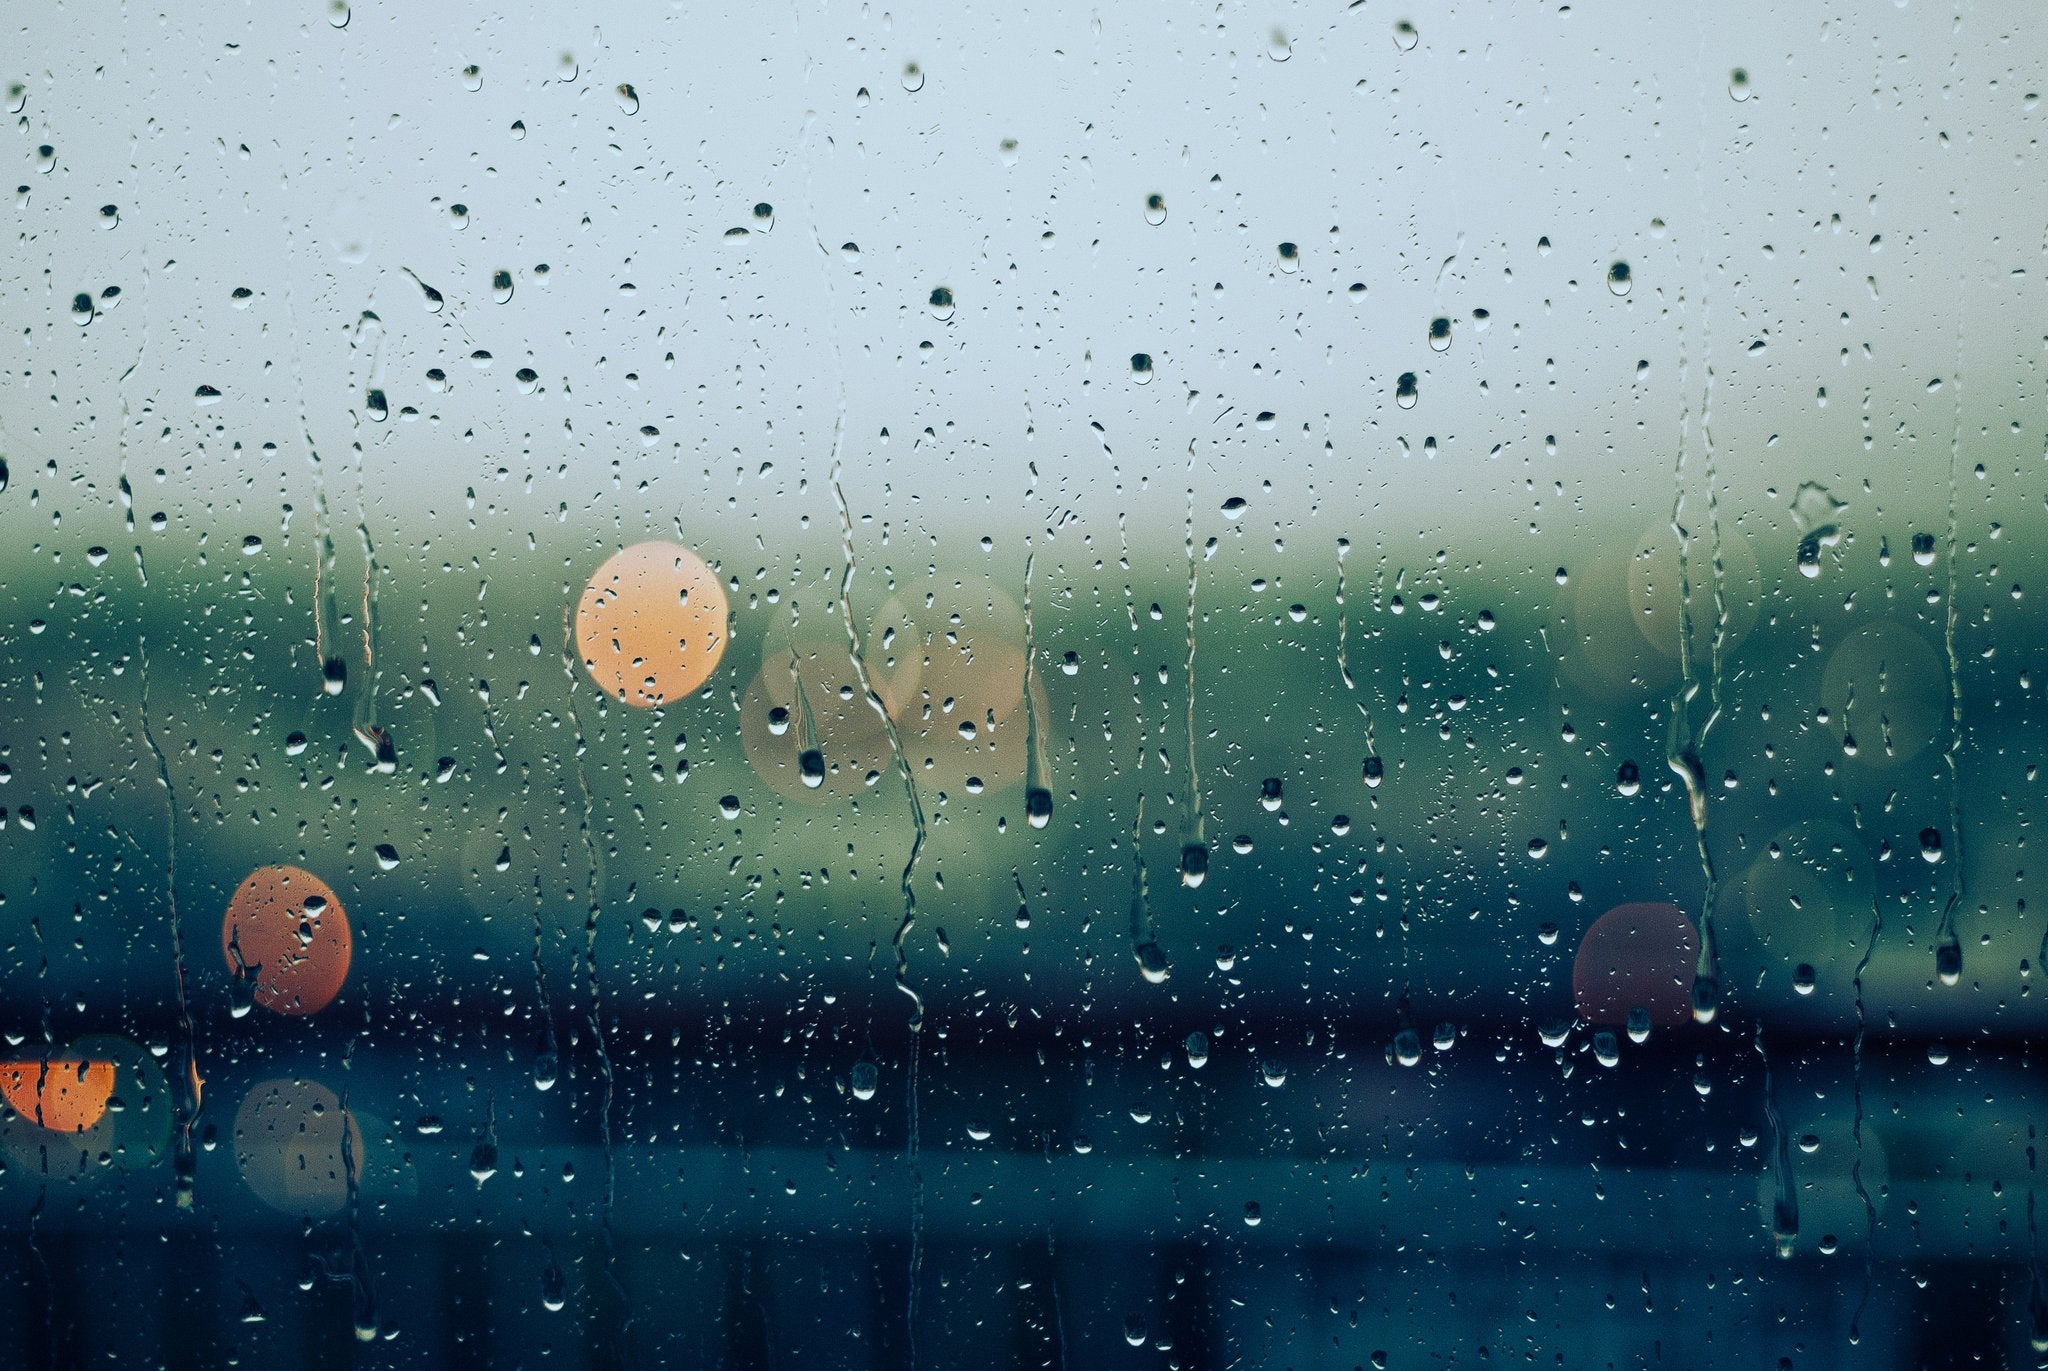 Why do rainy days give us the blues?